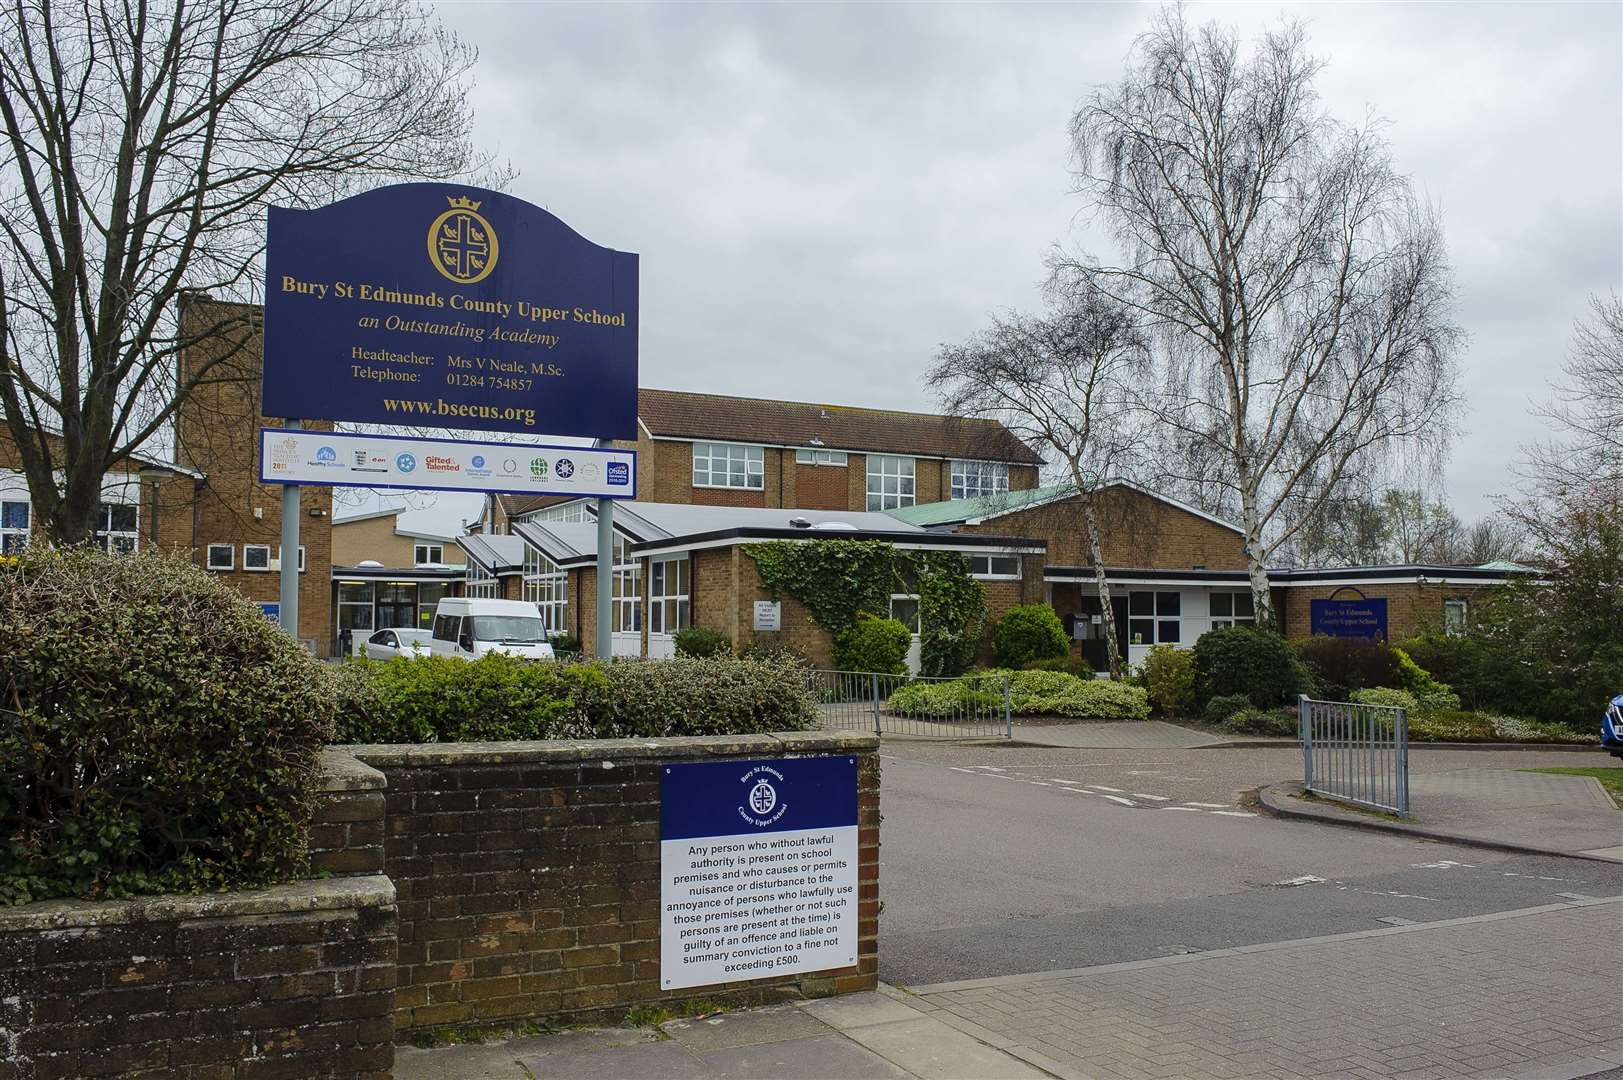 County Upper School in Bury St Edmunds has been told it still needs to improve safeguarding. Picture: Mark Bullimore Photography